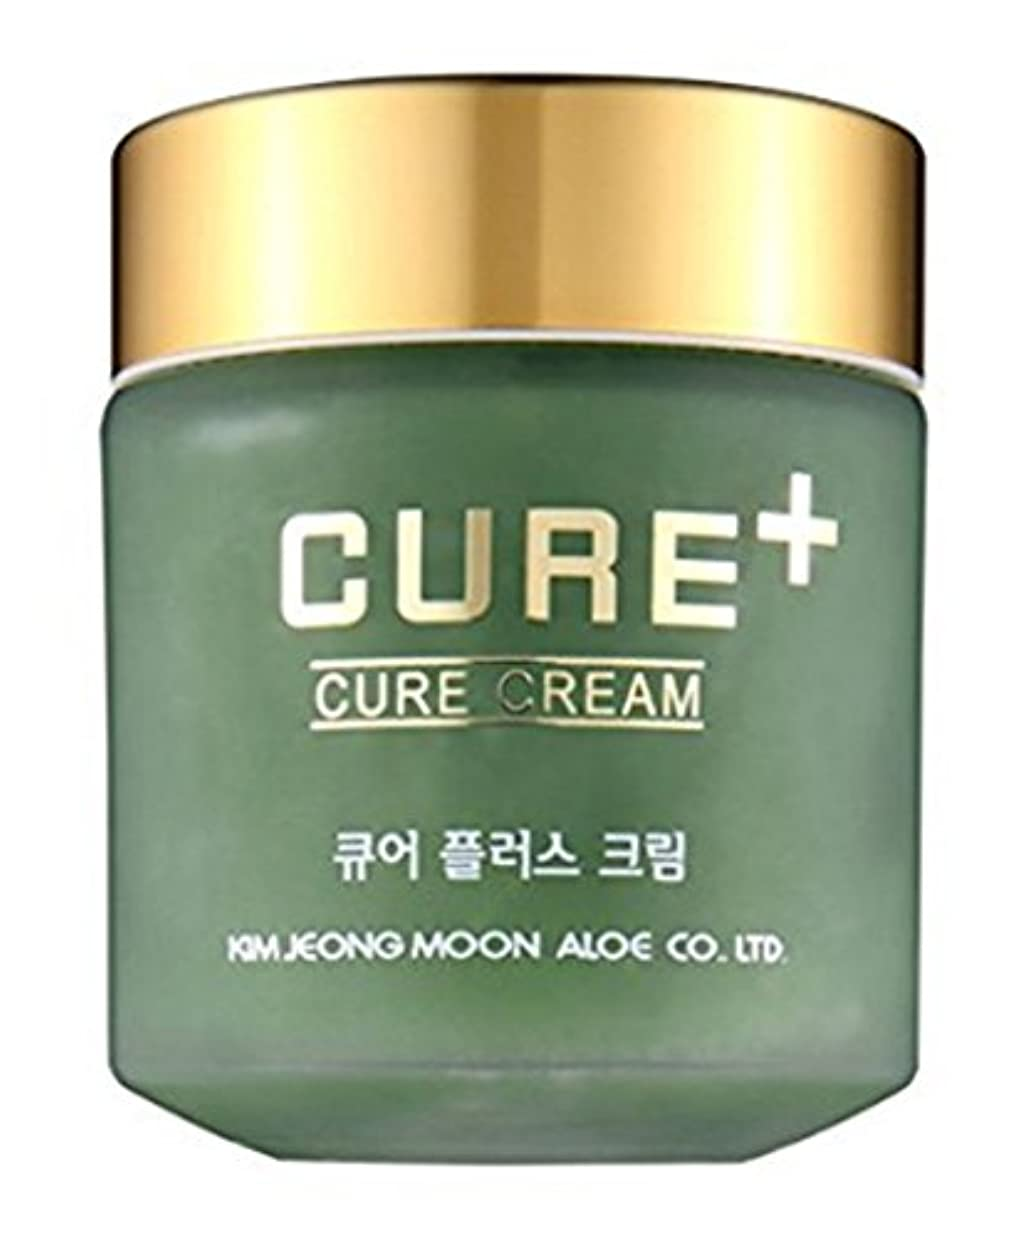 パッド物理的な必要としている[ギムジョンムン] Kim Jung Moon アロエとセンス炉キュアプラスクリーム Moisturizing and Protection Effect of Aloe CURE CREAM 80g 海外直送品 ( Kim Jung Moon Aloe Lecense Loewe Cure Plus Cream Moisturizing and Protection Effect of Aloe CURE CREAM 2.8oz(80g)) [並行輸入品]